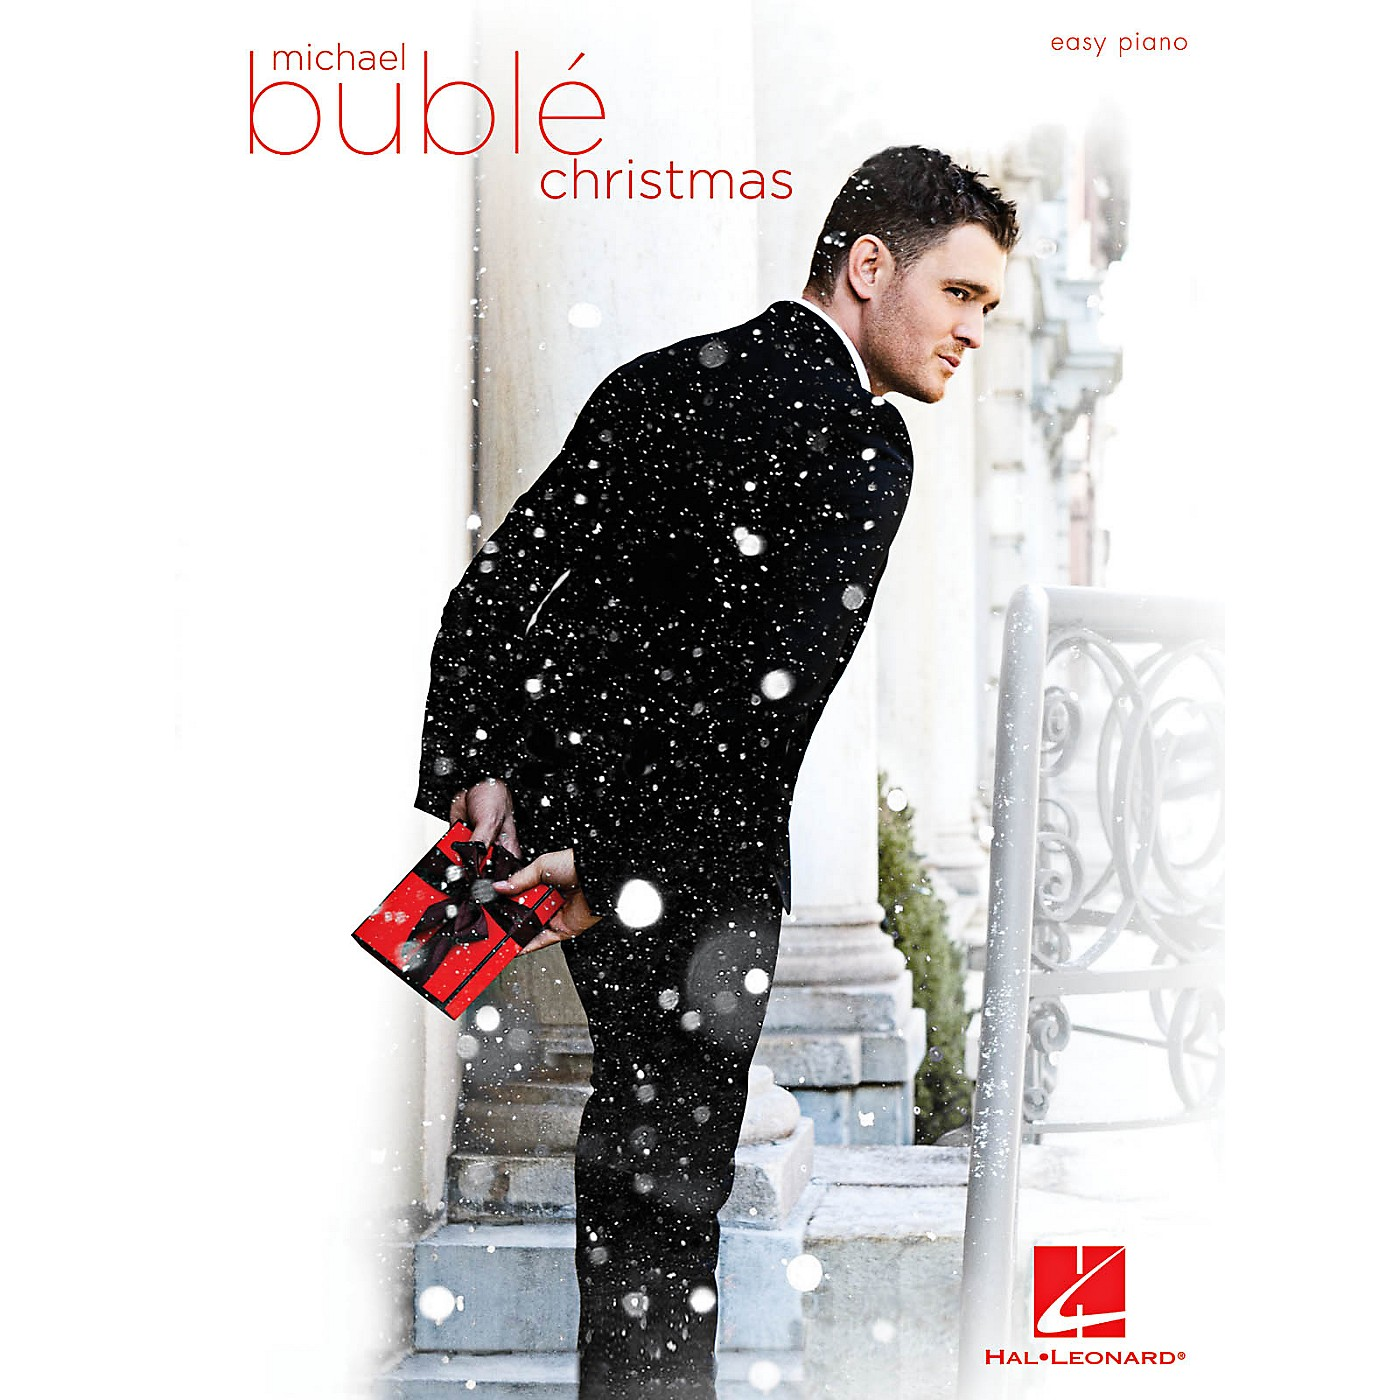 Hal Leonard Michael Buble - Christmas For Easy Piano thumbnail